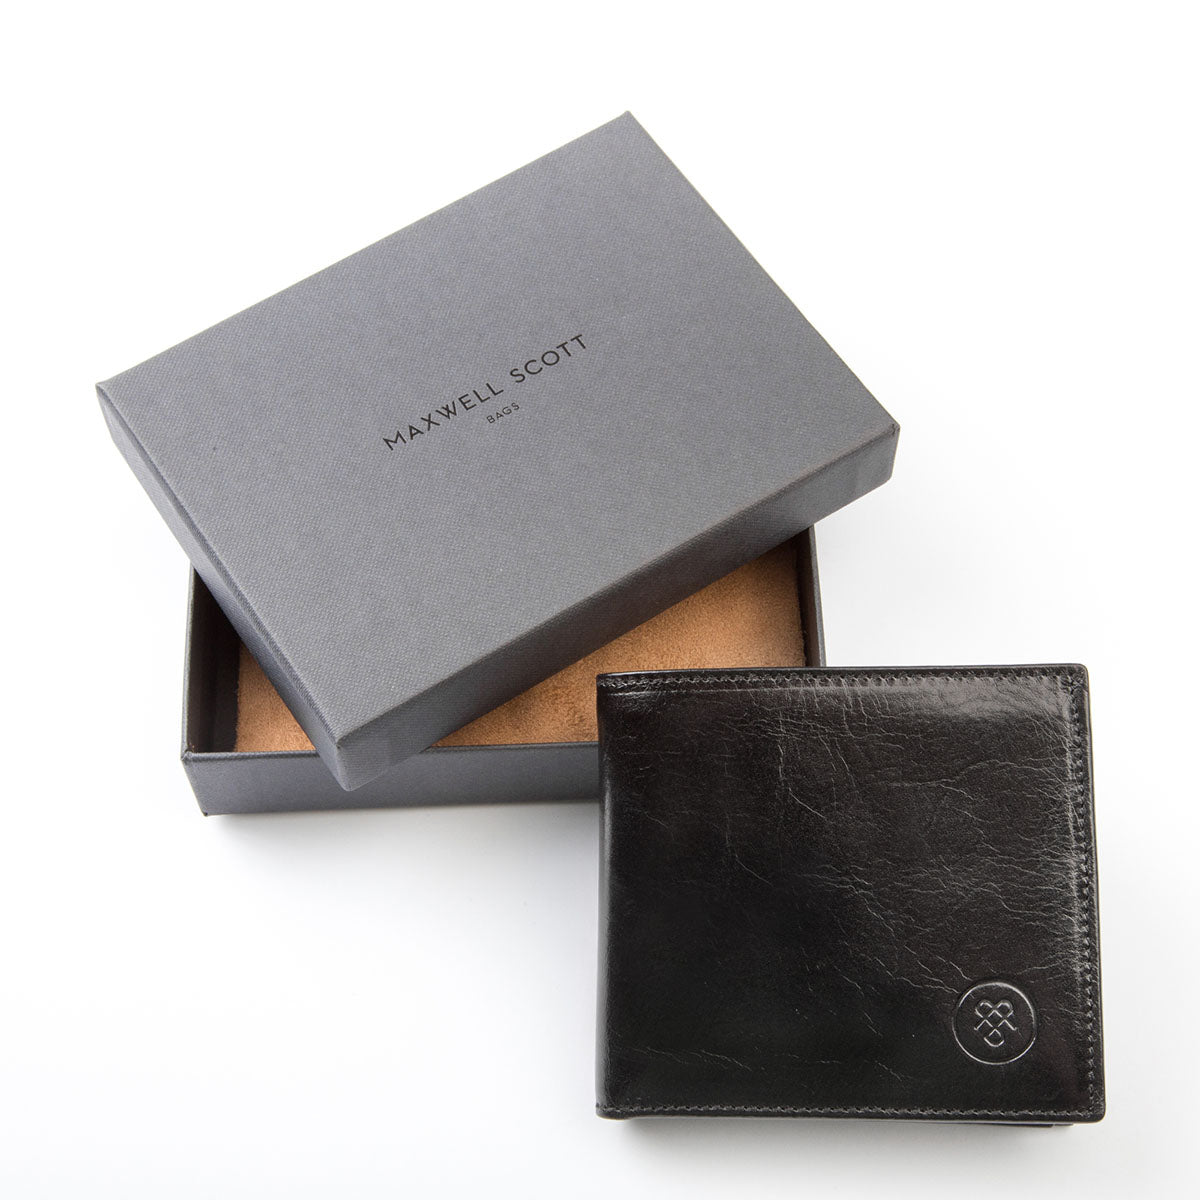 Image 7 of the 'Ticciano' Black Veg-Tanned Leather Wallet with Coin Pocket